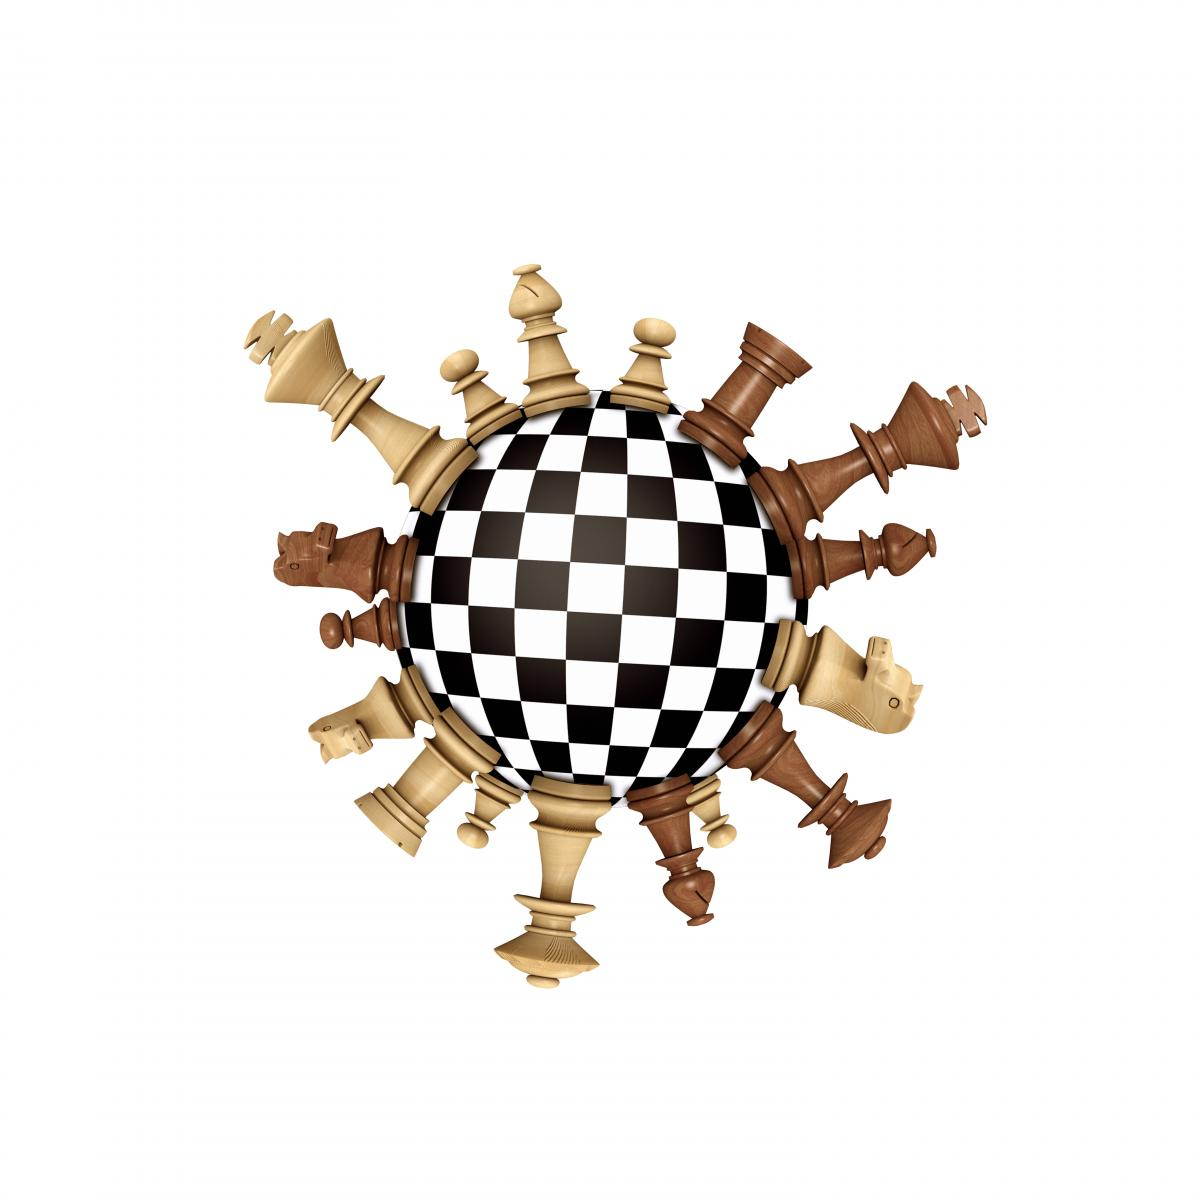 round-chessboard-and-pieces-arranged-to-resemble-coronavirus